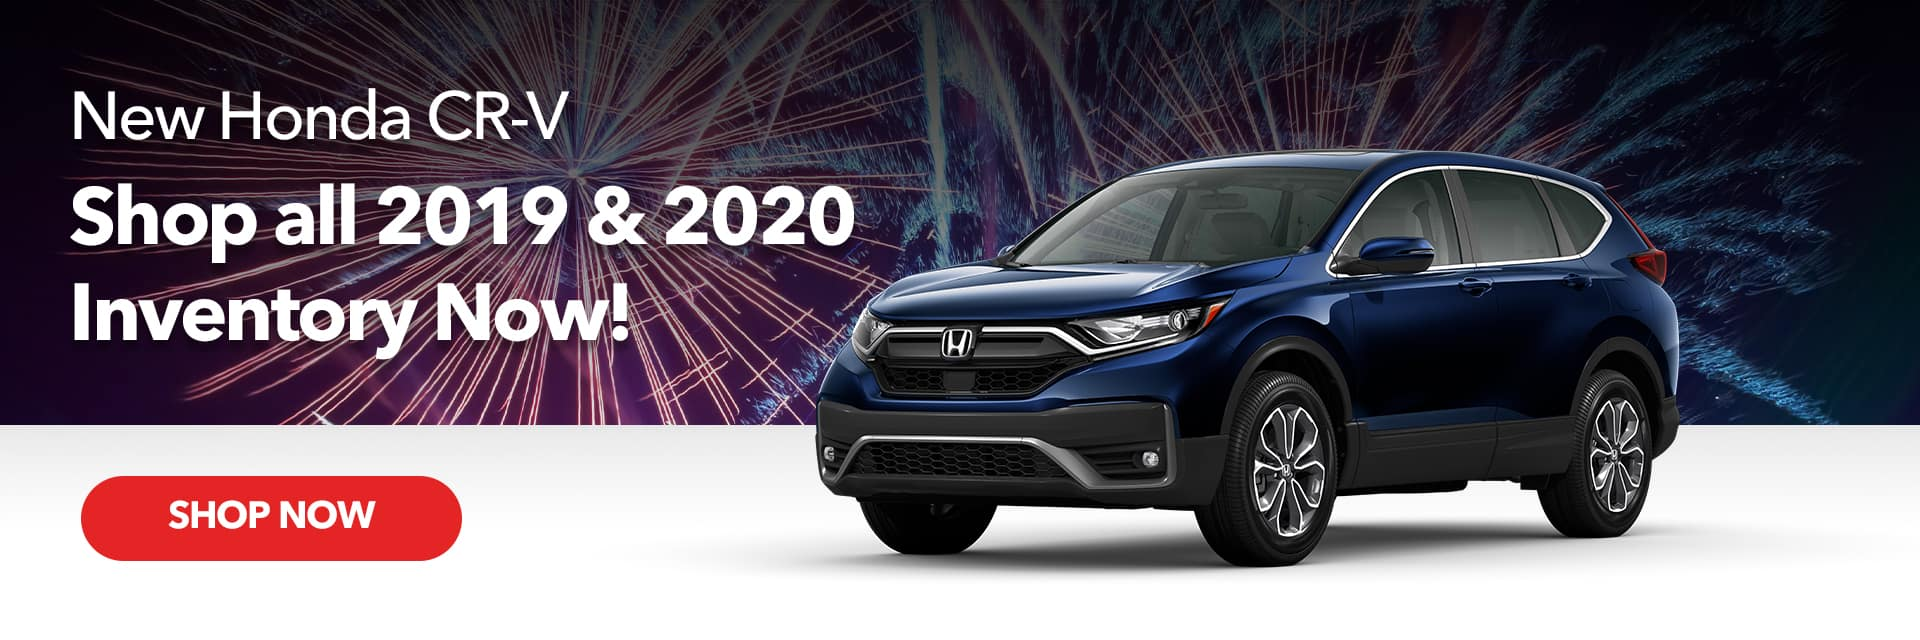 Link to March CR-V Specials